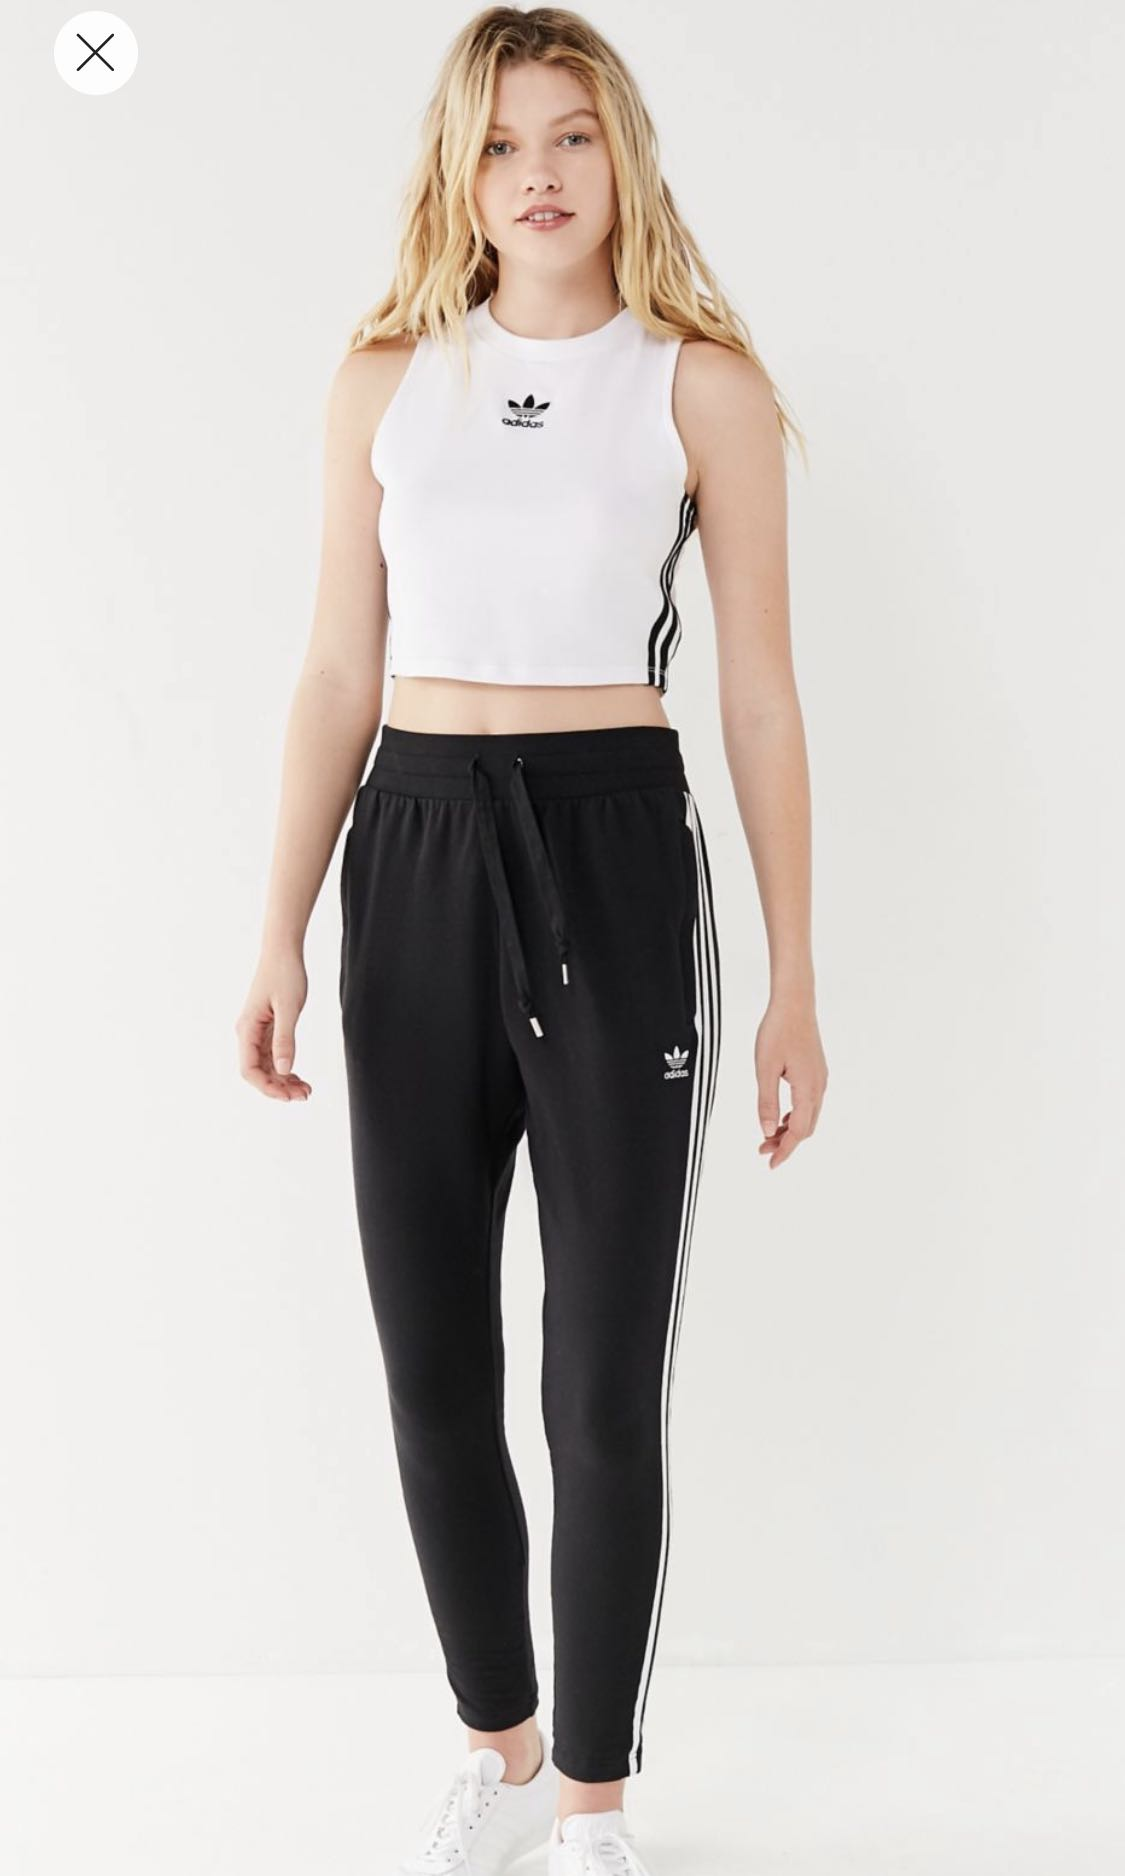 bdec697d769443 Adidas originals cropped tank top